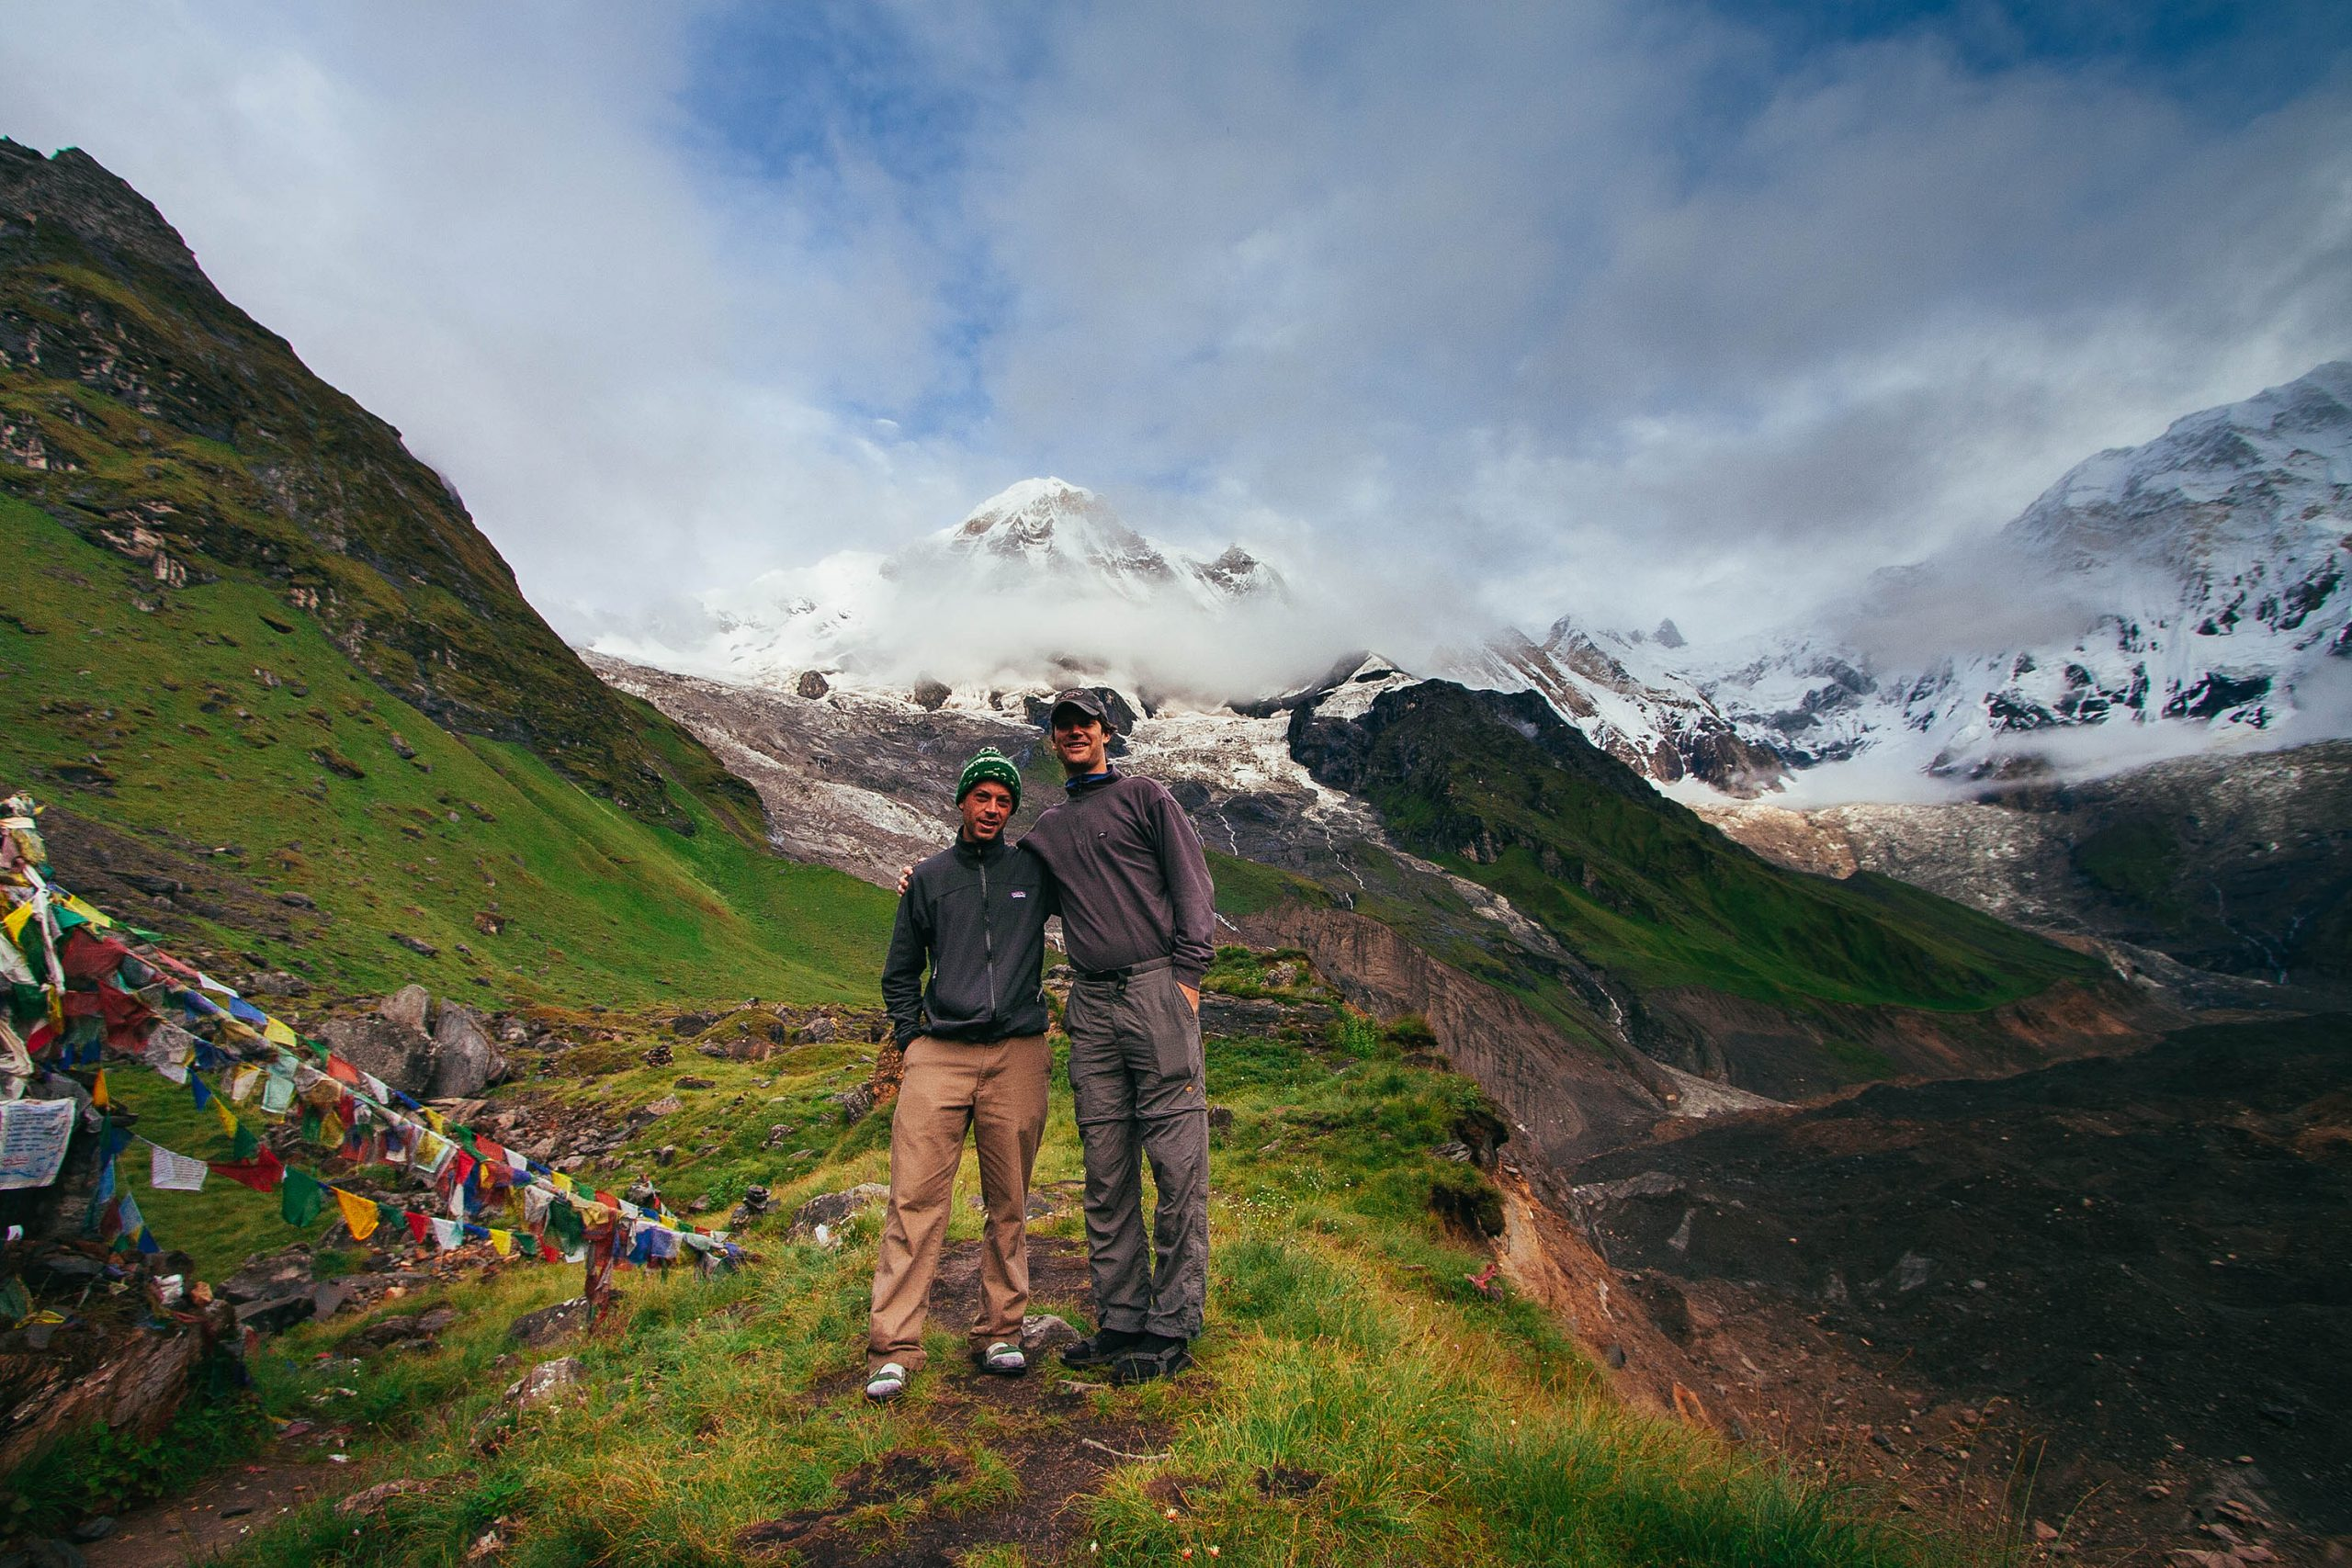 The Annapurna Trek in the Himalayas of Nepal